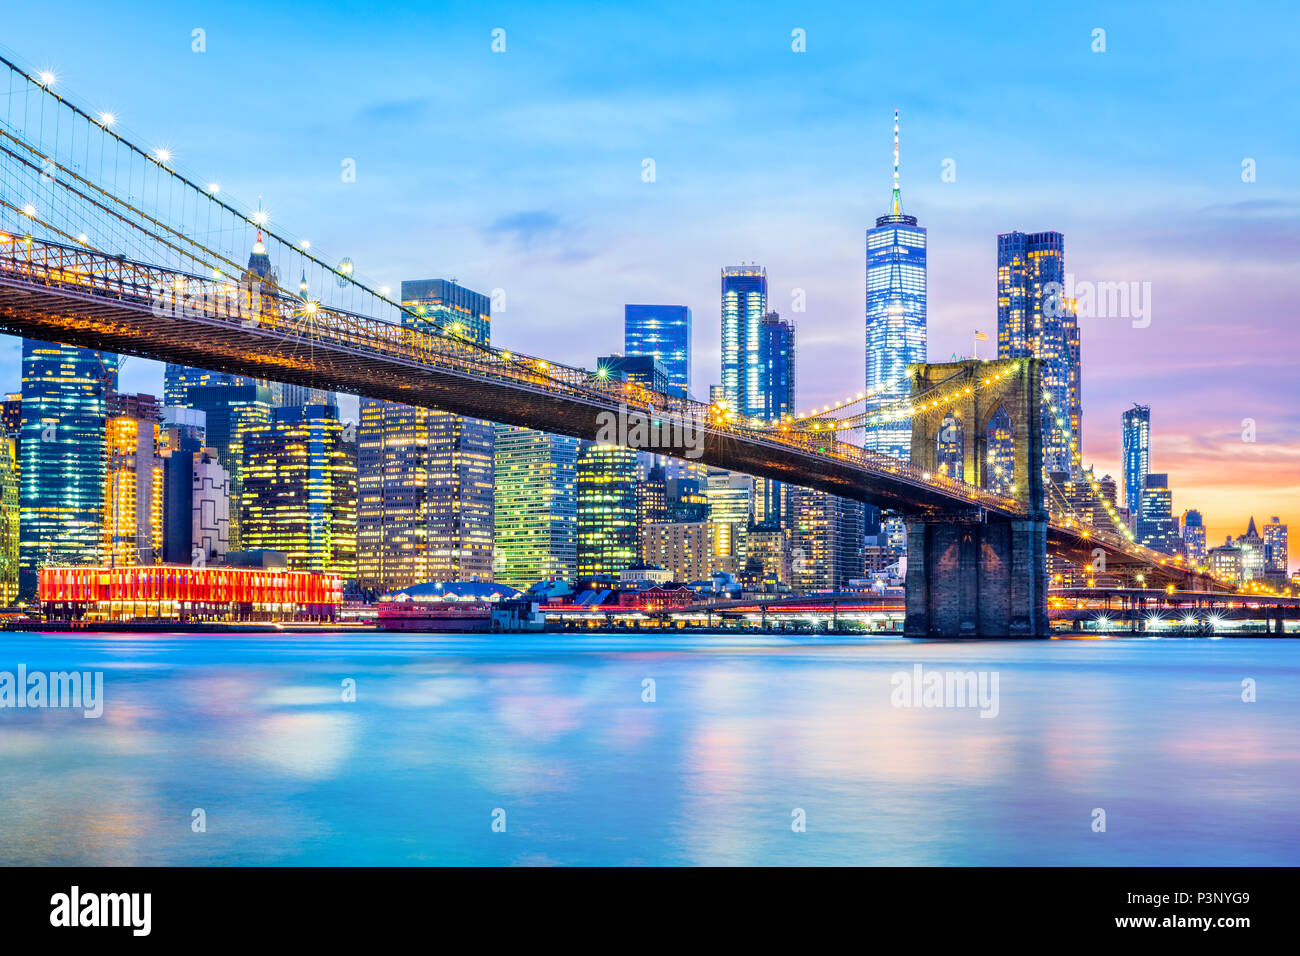 Brooklyn Bridge and the Lower Manhattan skyline at dusk - Stock Image